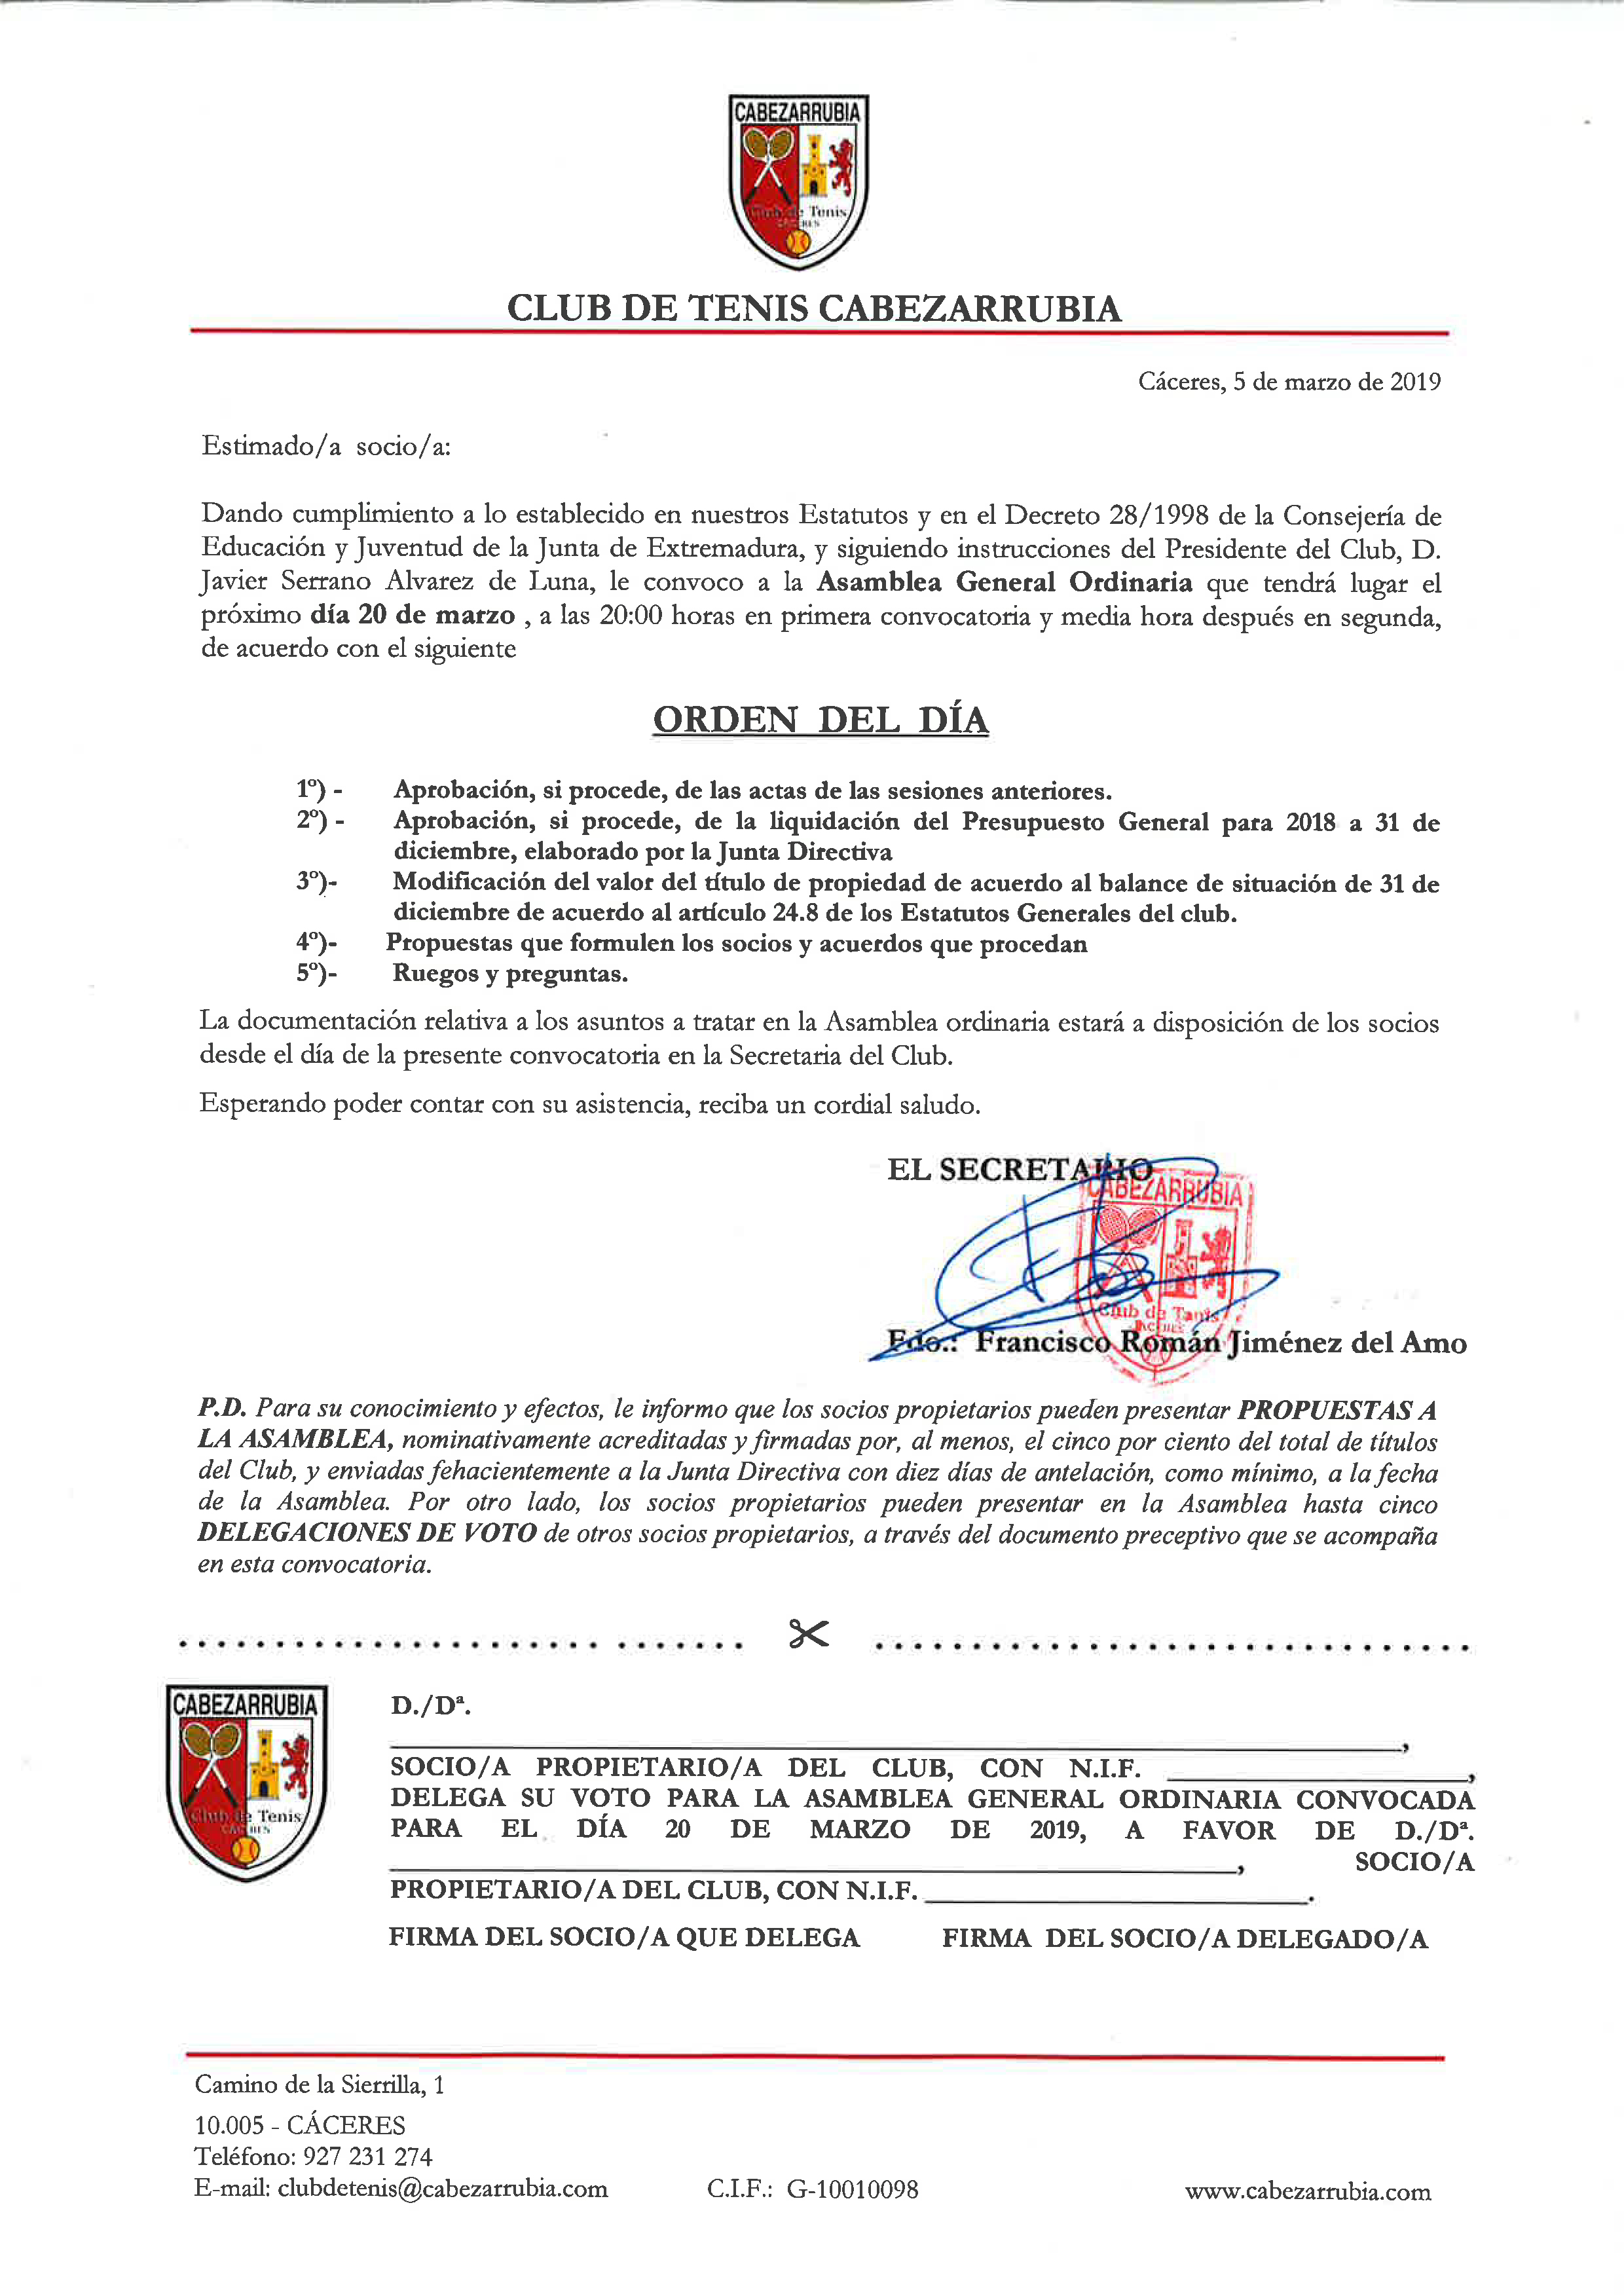 20190320-Convocatoria Asamblea General Ordinaria 20 Marzo 2019-1